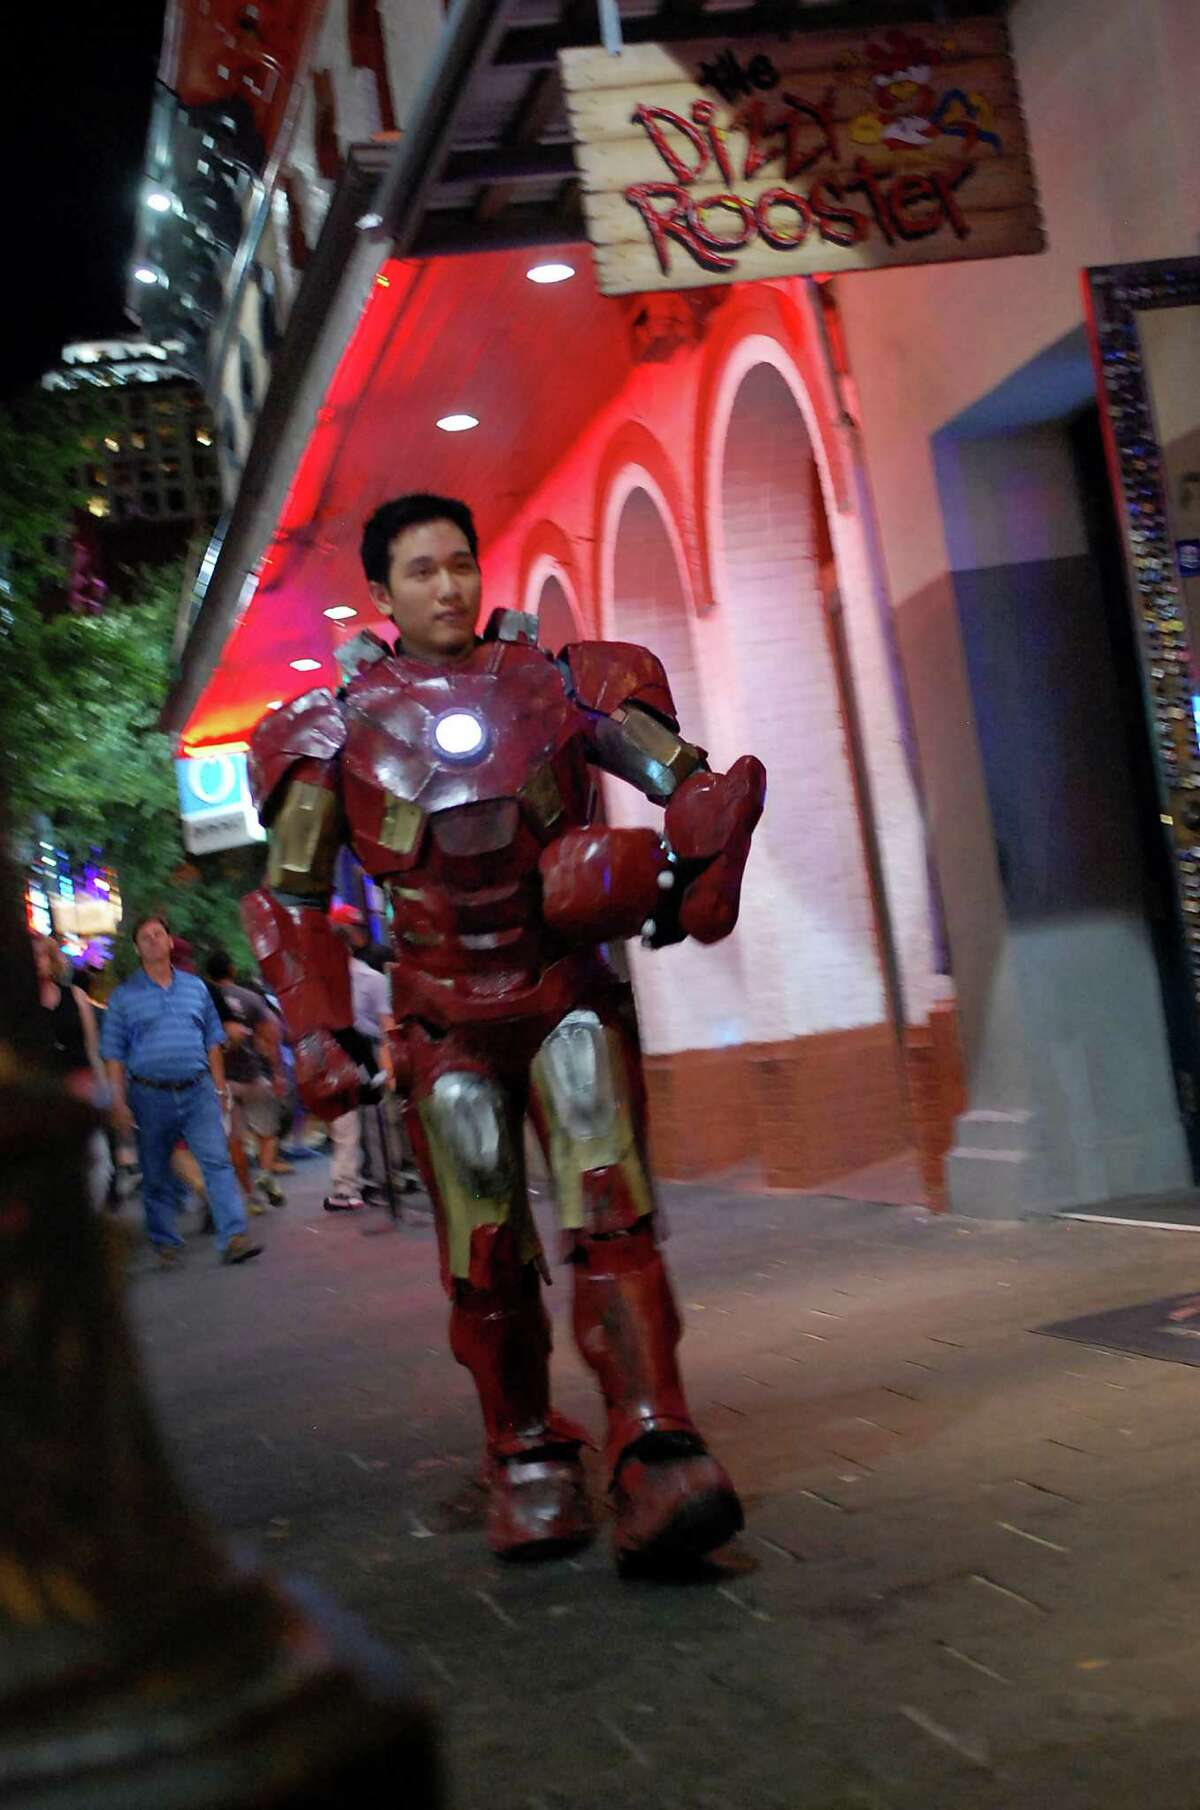 Albert Lee, a Junior at the University of Texas at San Antonio, wearing an Iron Man suit he made to help campus group, For the Kids, raise funds for children with cancer.